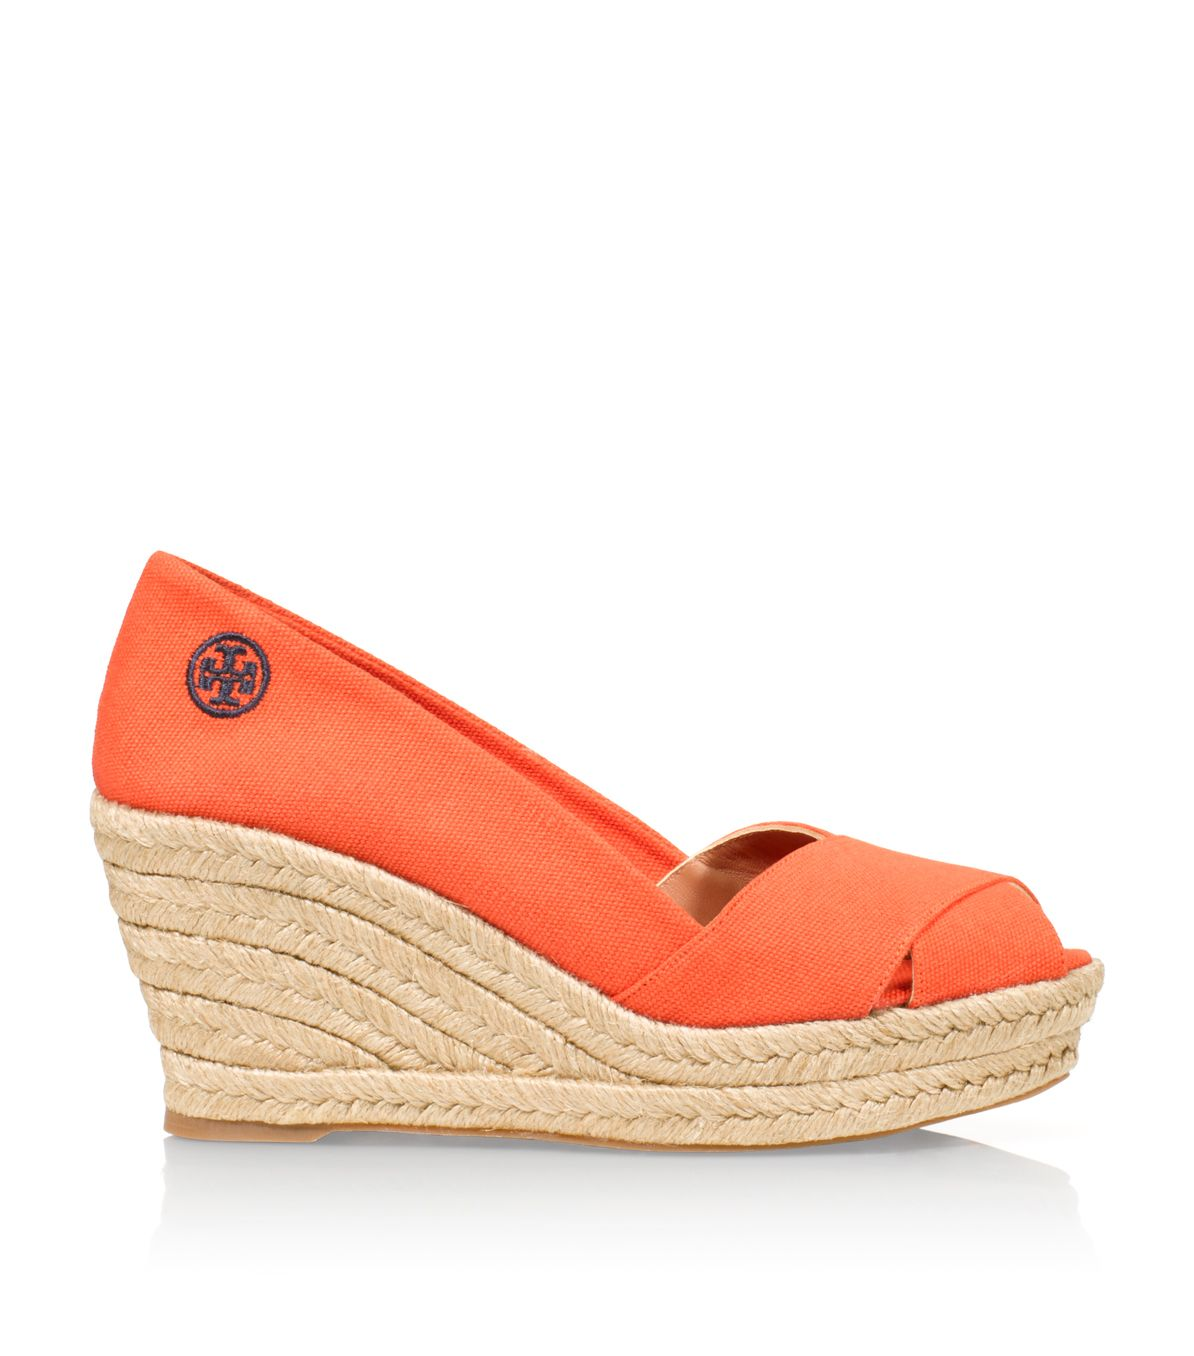 13a484f3f Tory Burch Filipa Espadrille Wedge in Red - Lyst